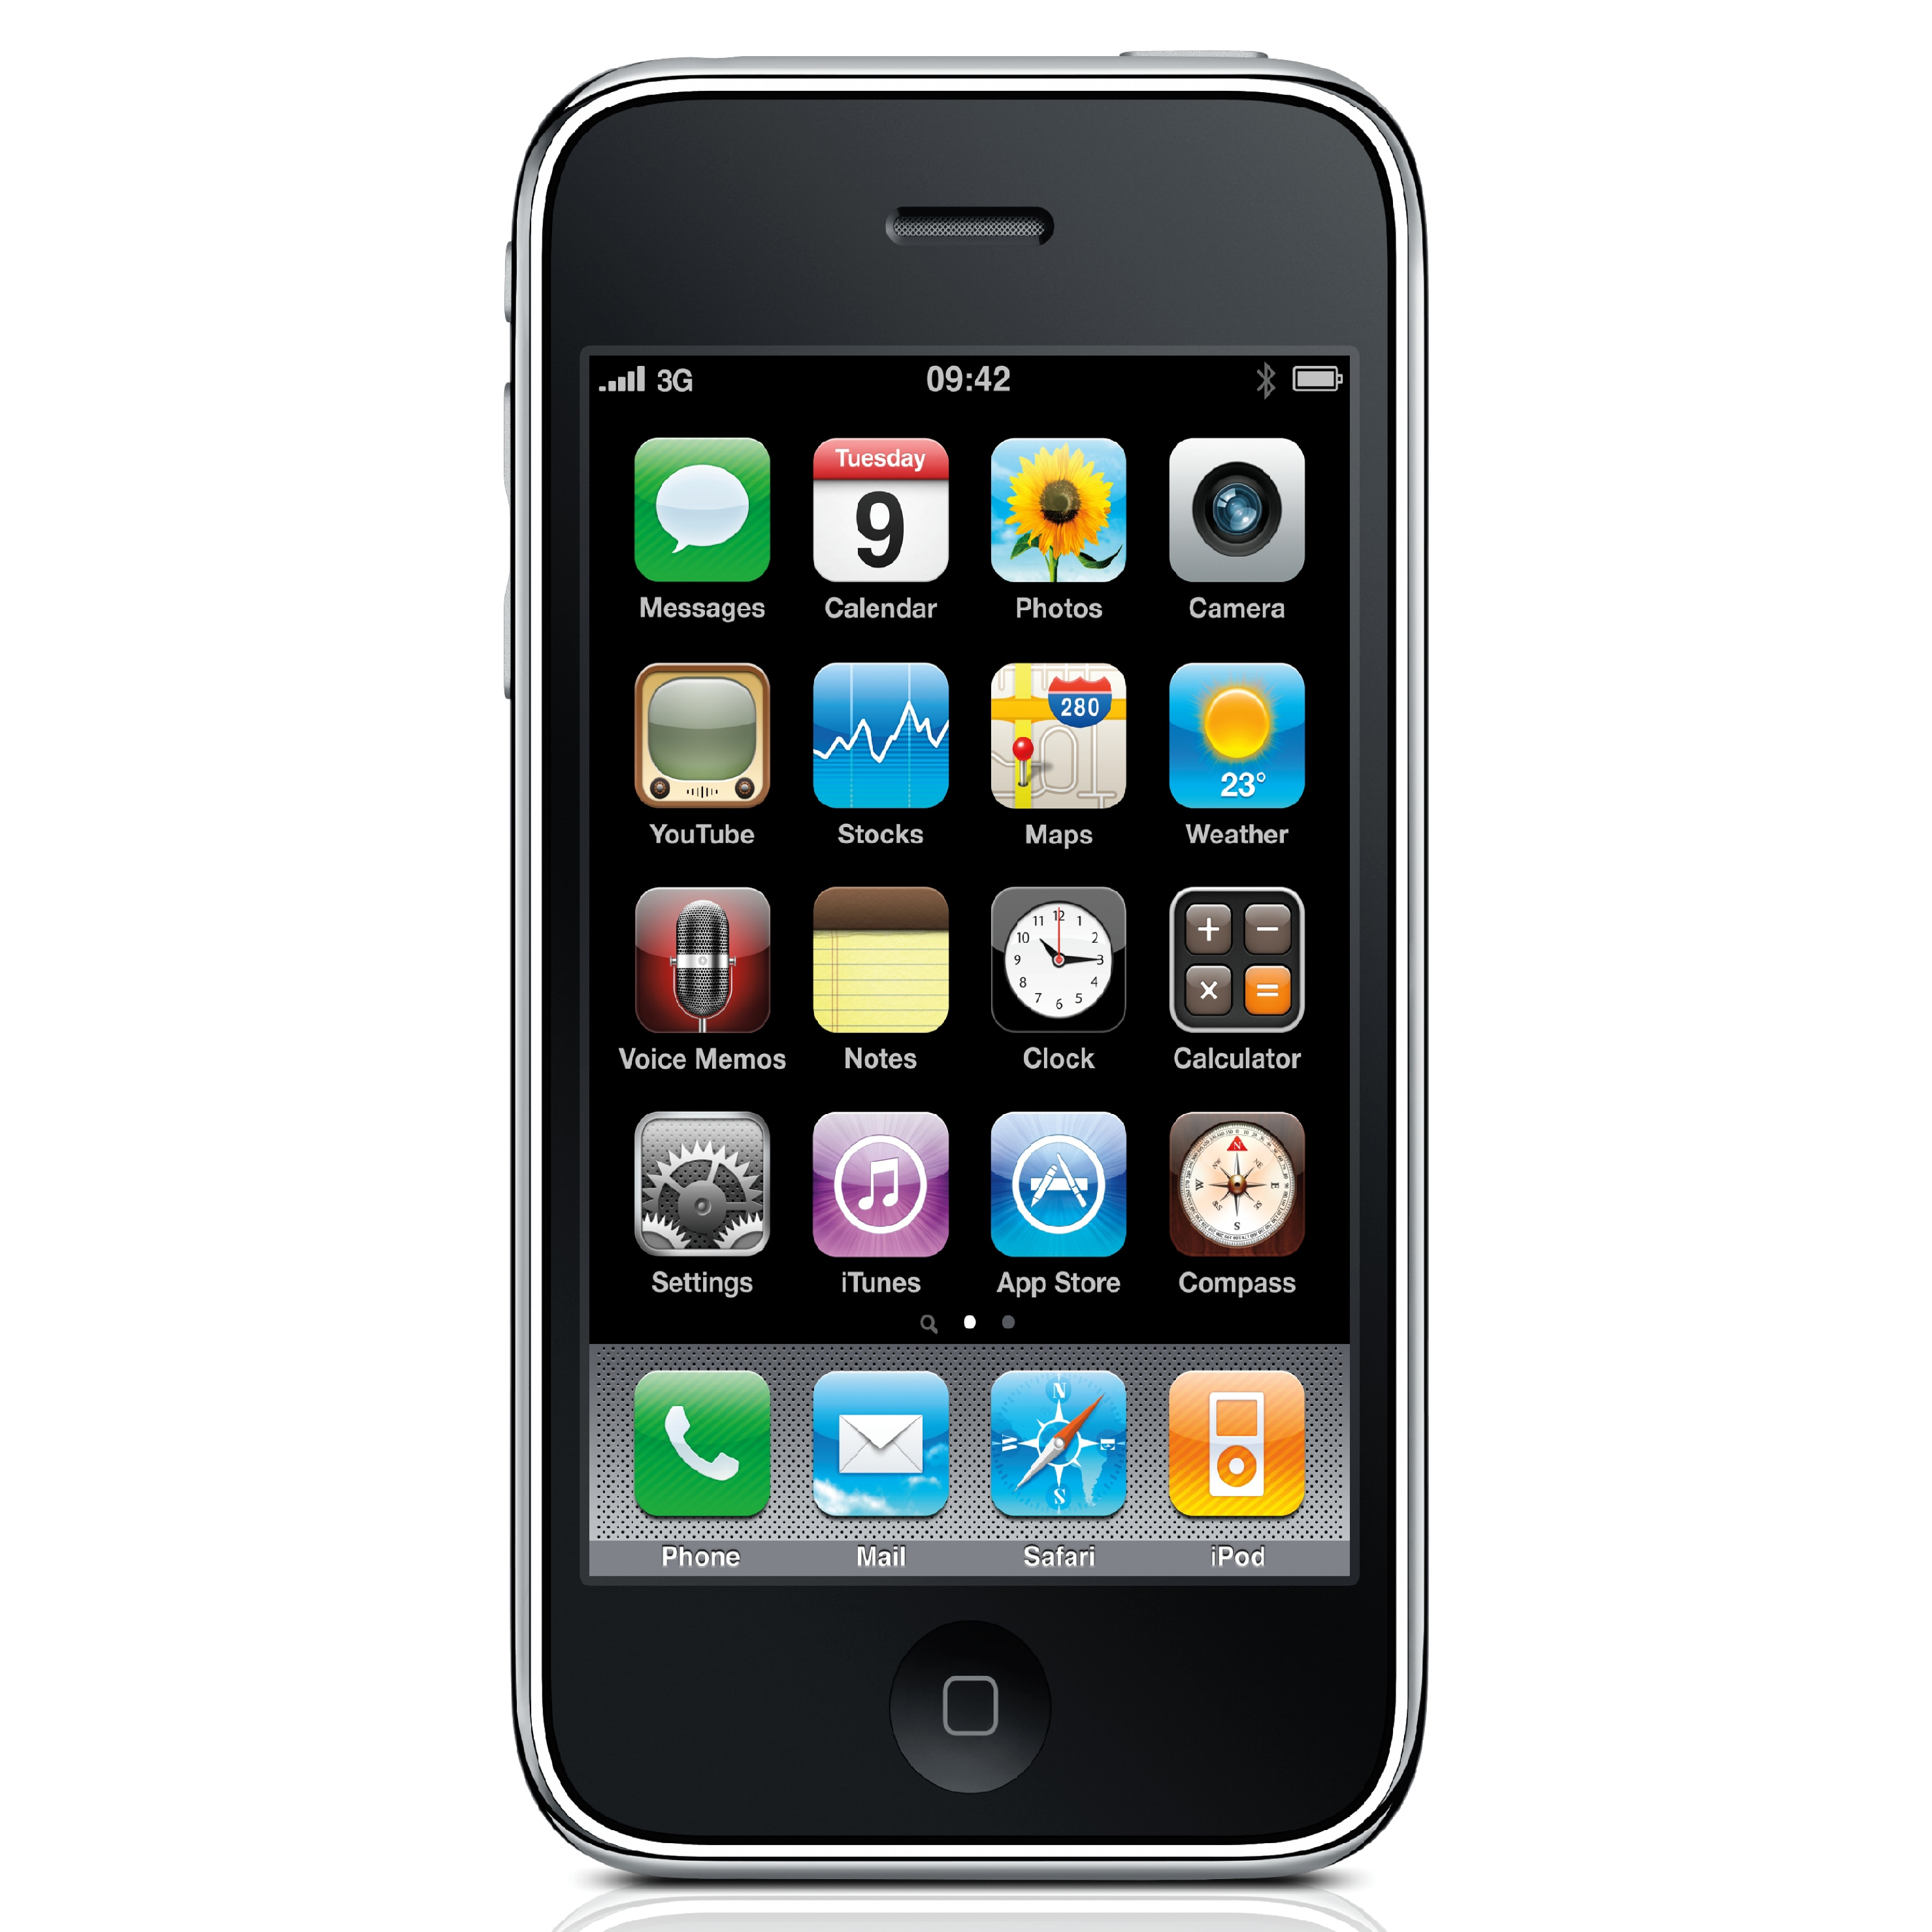 Iphone 3gs Apple Iphone 3gs 8gb Oem At T Gsm Unlocked Cell Phone Black